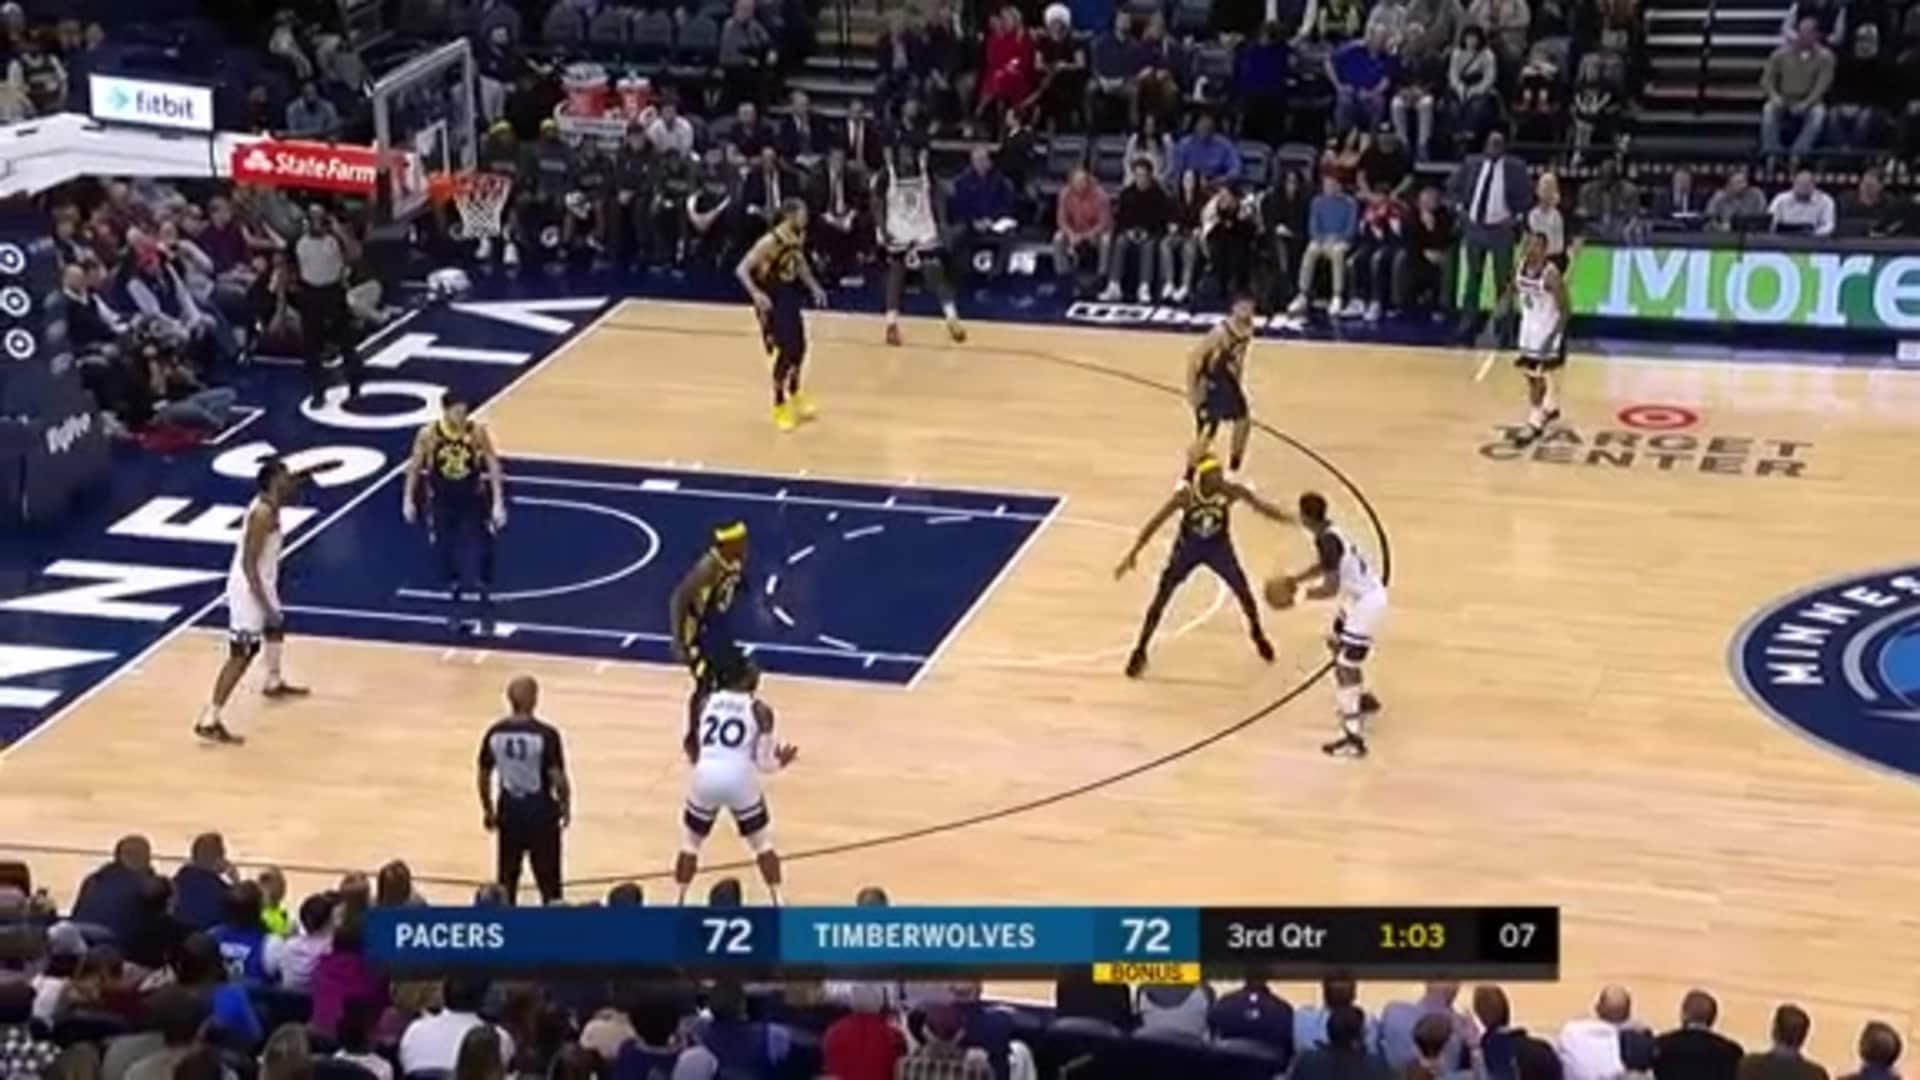 Highlights | Timberwolves 99, Pacers 104 (1.15.20)